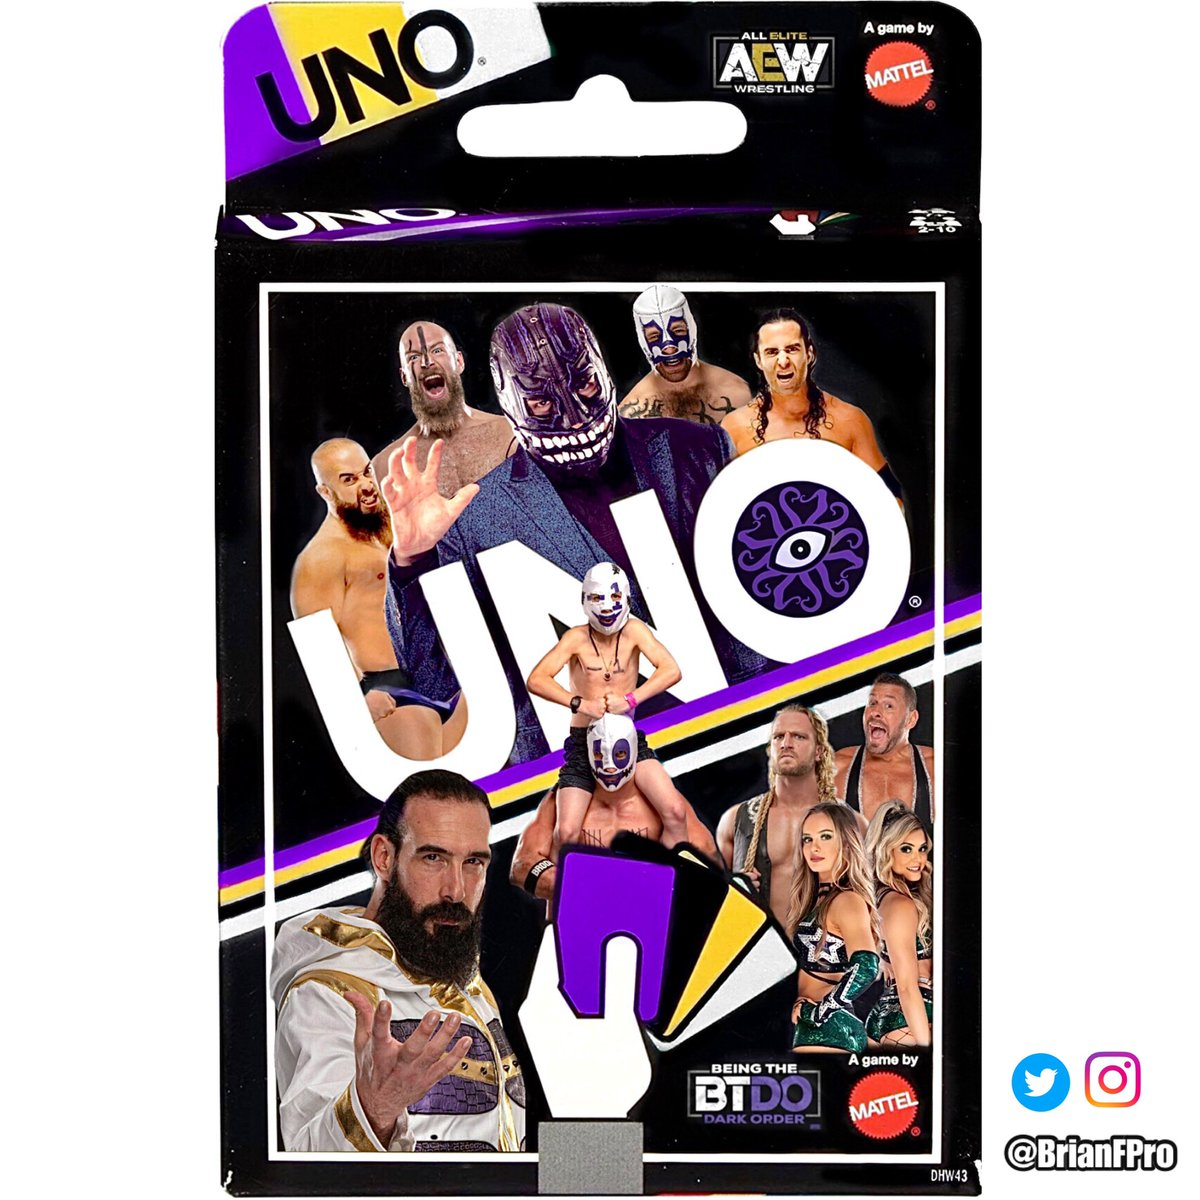 Soooo.. remember the Uno package concept art I made last September?!  Well, since Dark Order's made a few new friends, I've made some suitable adjustments— ft: @ColtCabana, @TayConti_, @theAdamPage & -1.